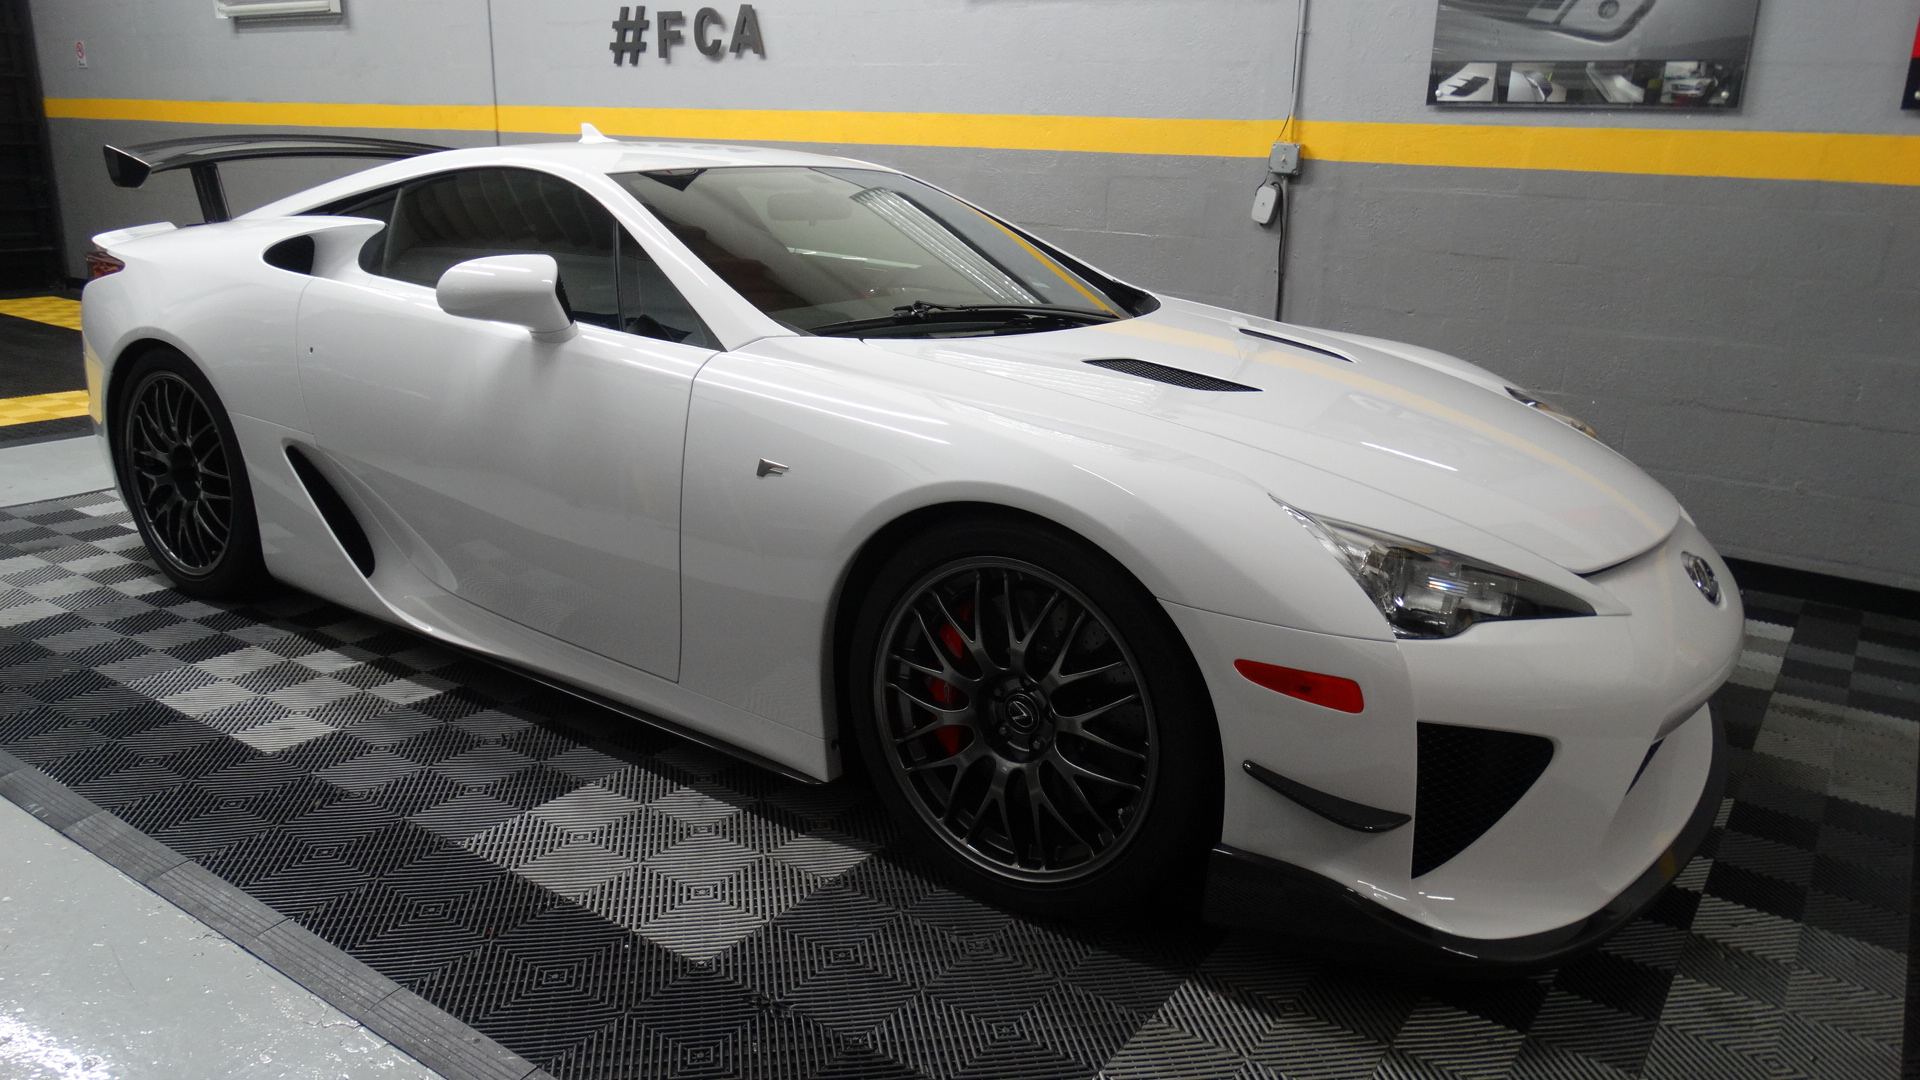 2012 LEXUS LFA At First Class Autosports Miami For Paint